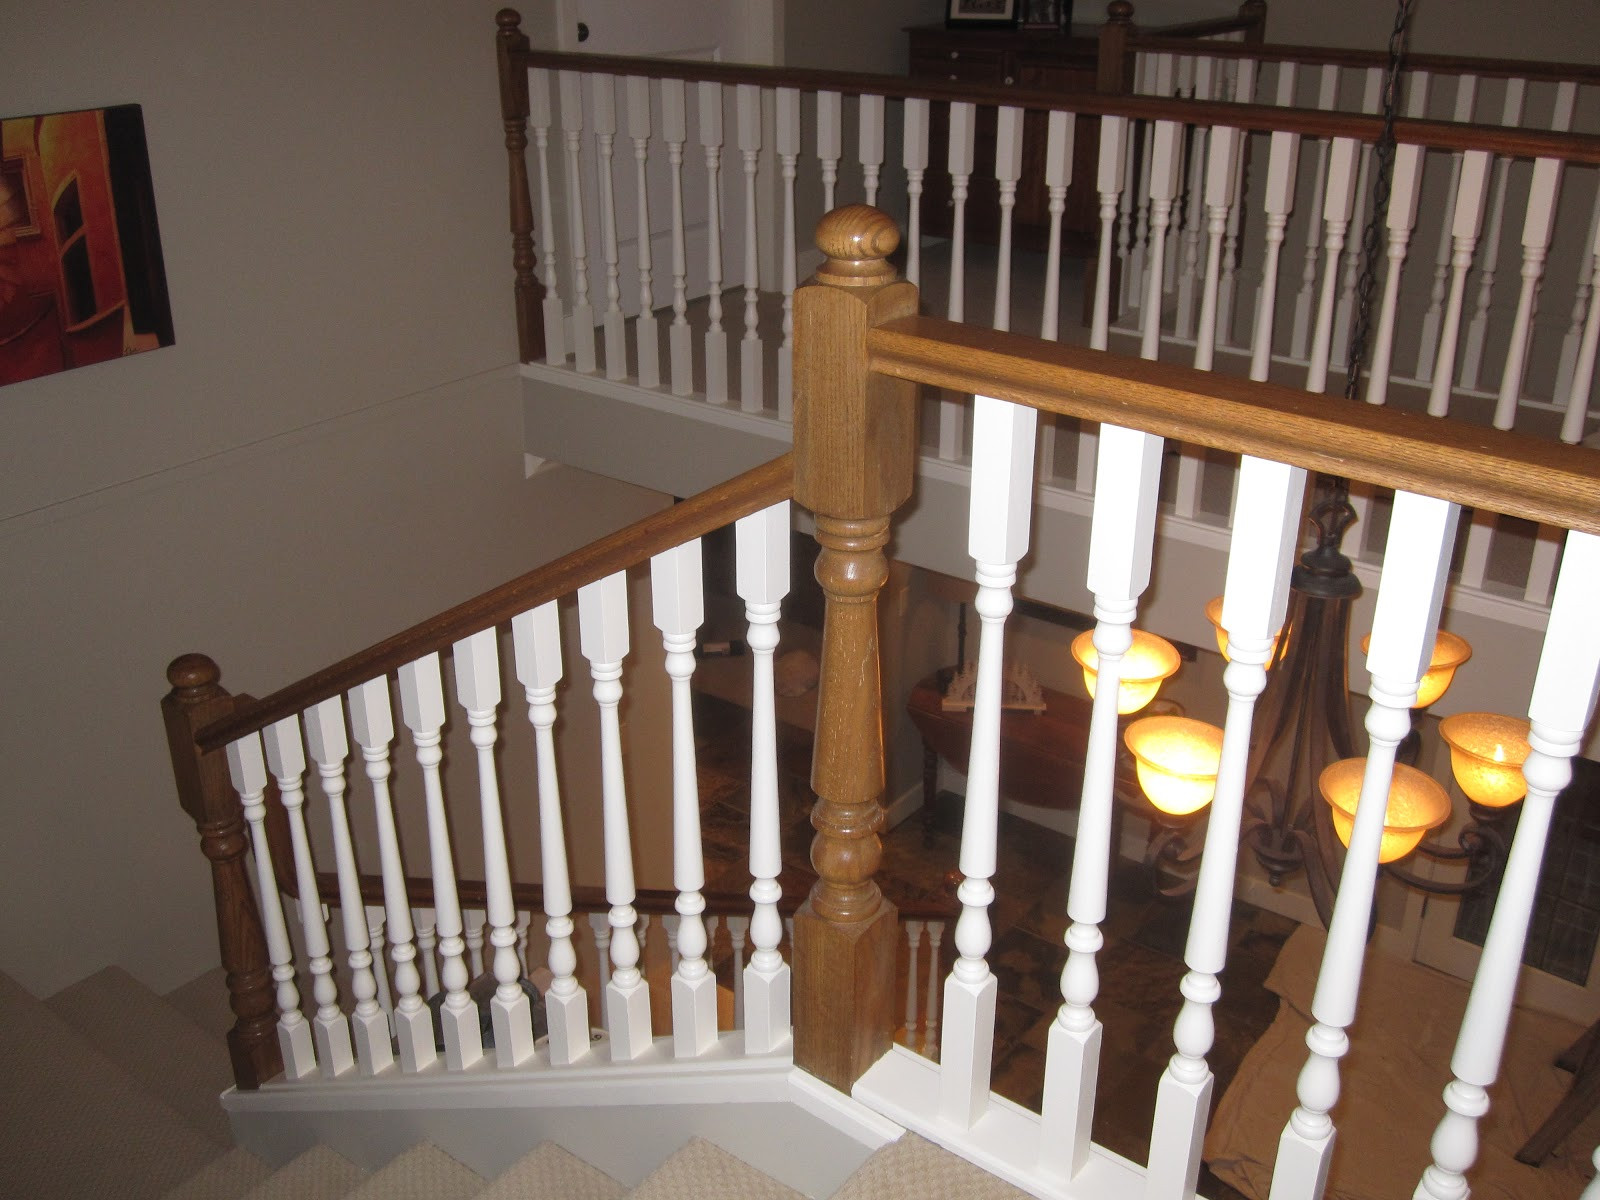 Best ideas about Indoor Stair Railings . Save or Pin Unique Stair Railing Styles Now.